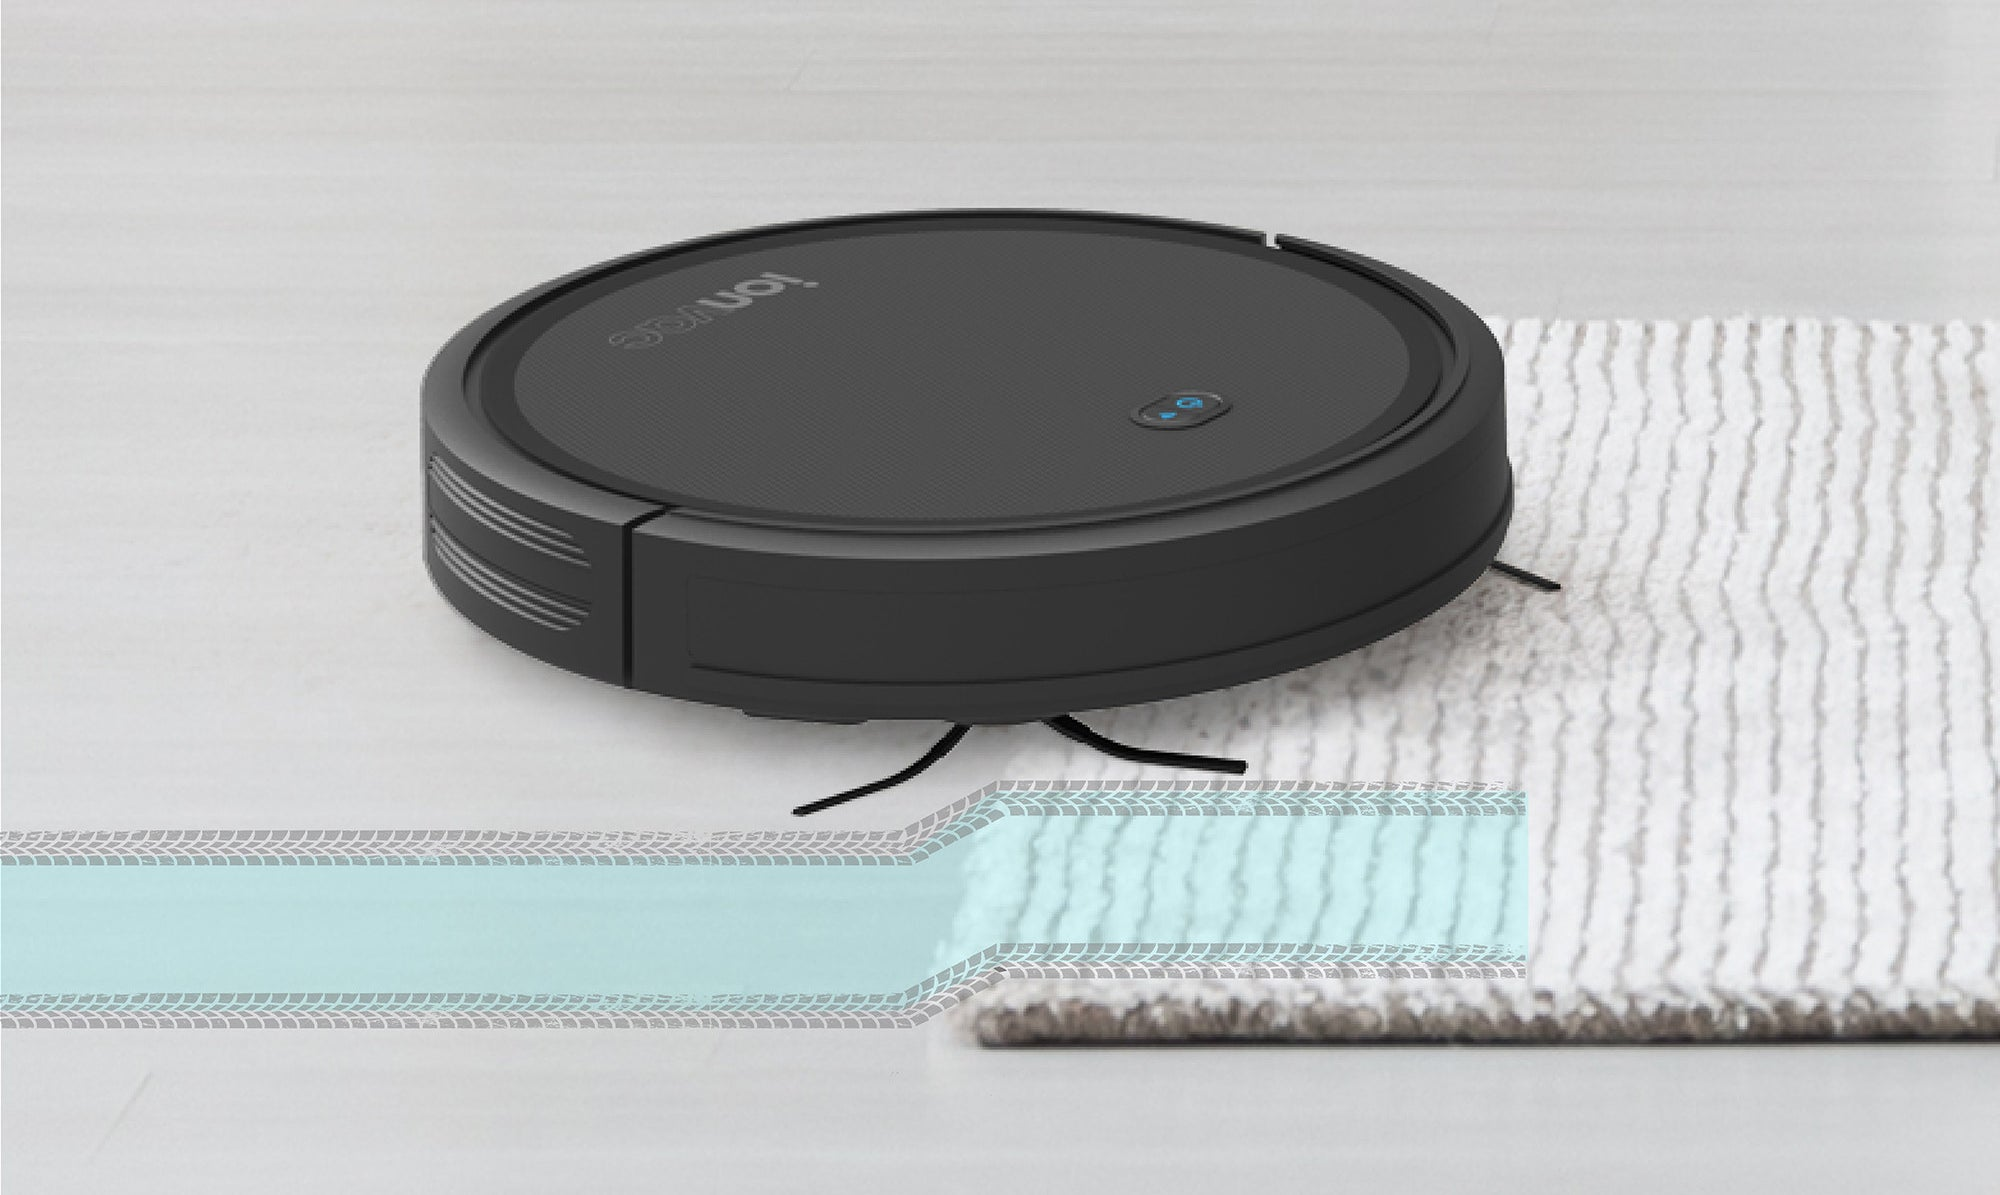 ionvac robot vacuum going up on a rug